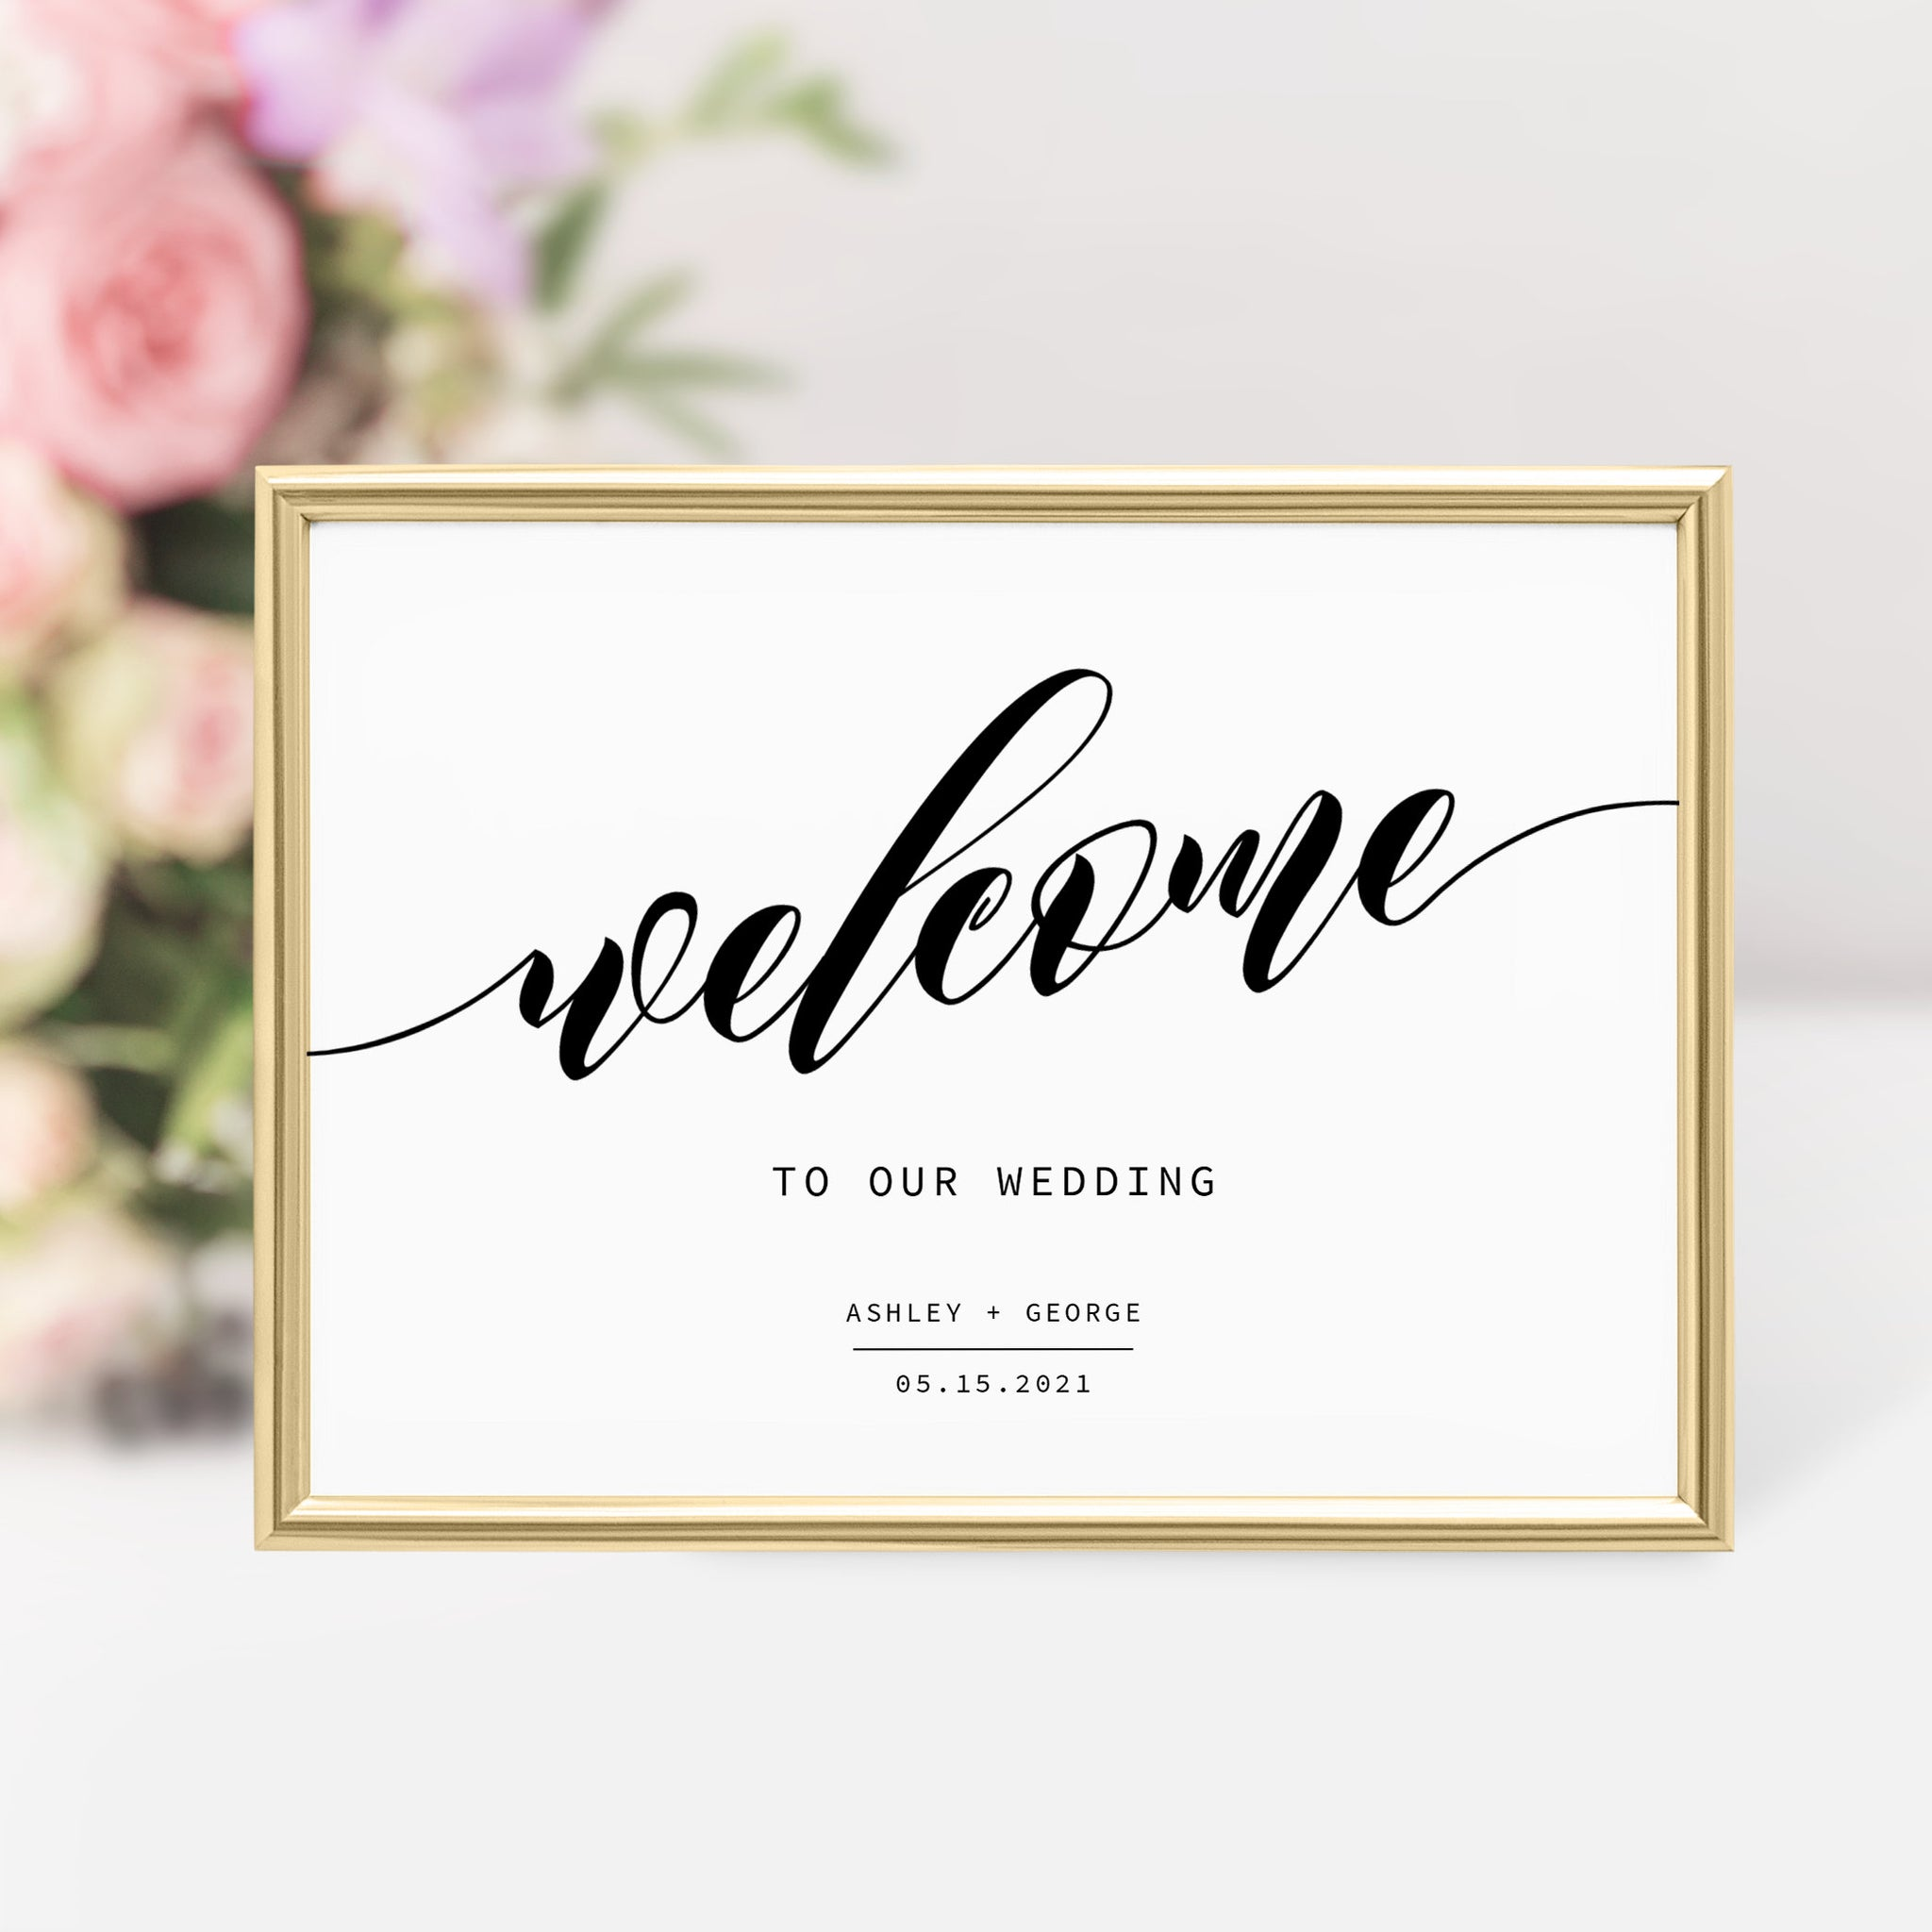 Wedding Welcome Sign Template, Large Welcome Sign Printable, Winter Wedding Welcome Sign, Modern Wedding Signs, DIGITAL DOWNLOAD - SFB100